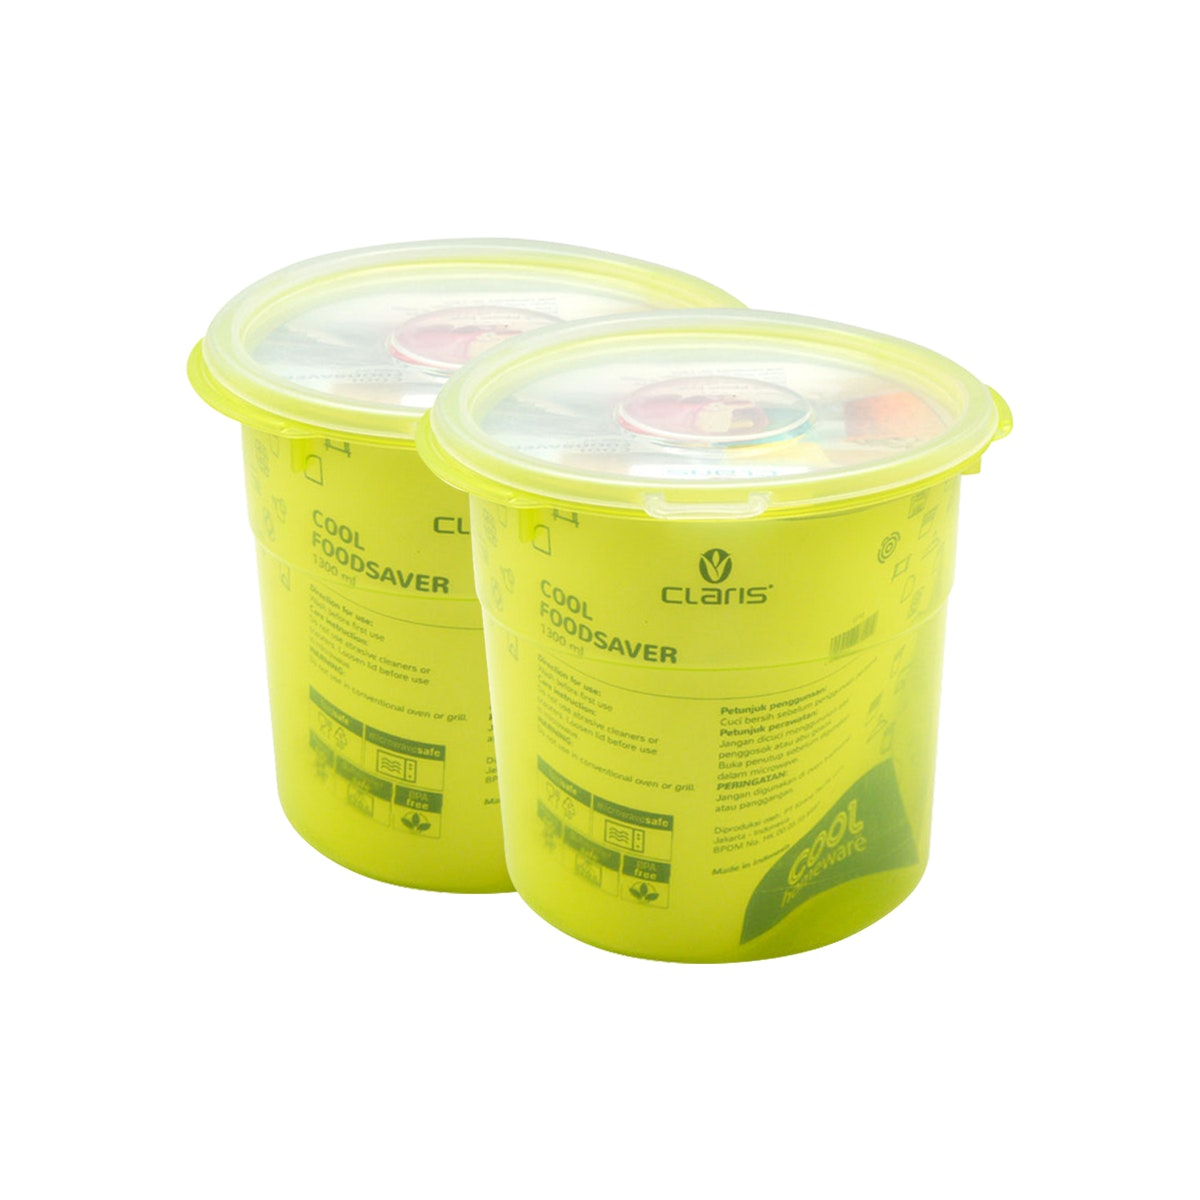 Claris Paket CR Foodsaver 2712 (1 paket isi 2 pcs)-Green